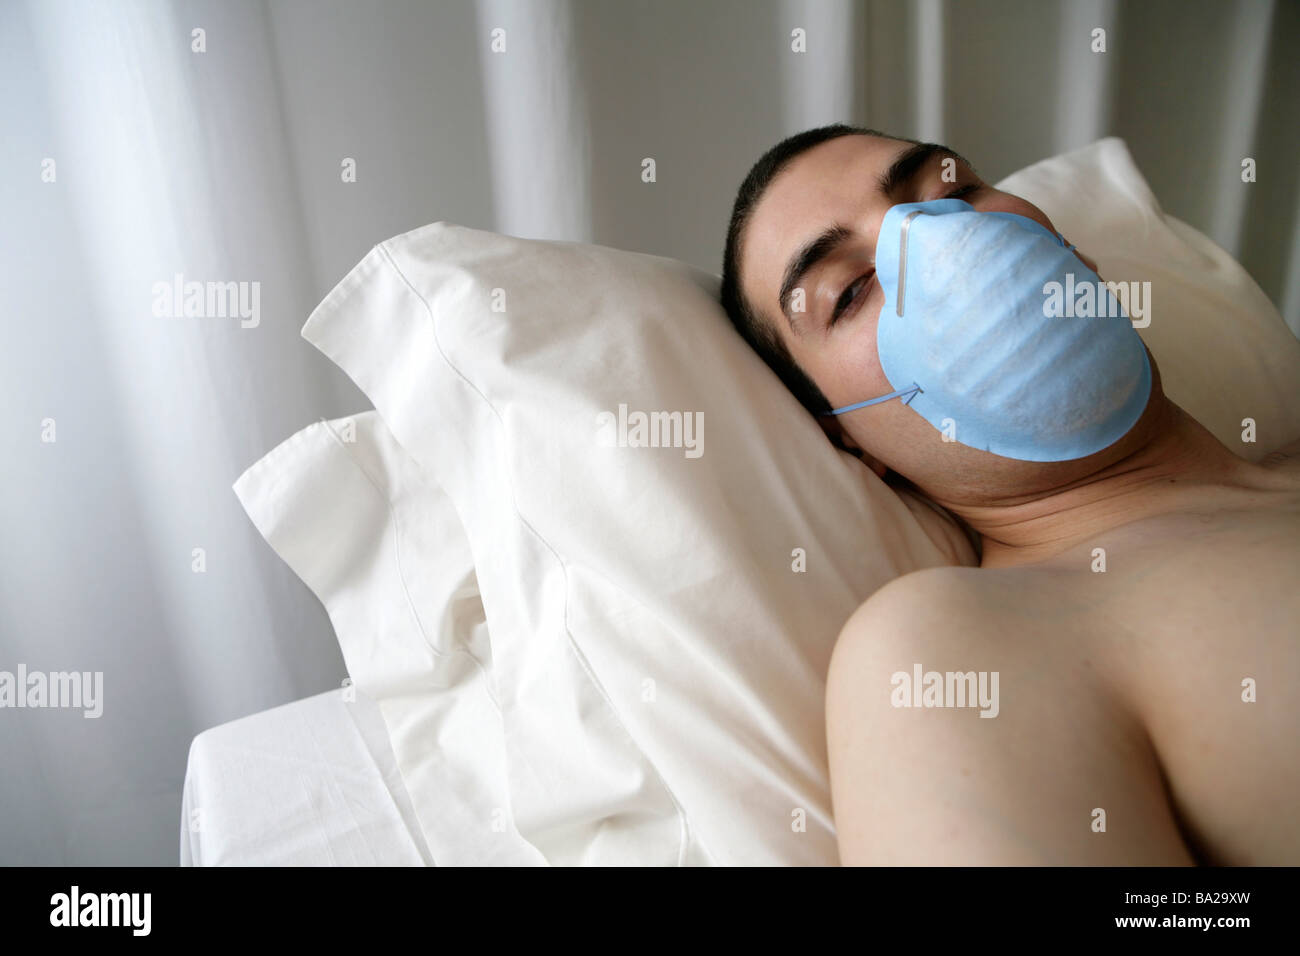 Adult male patient with mask waiting for doctor health - Stock Image